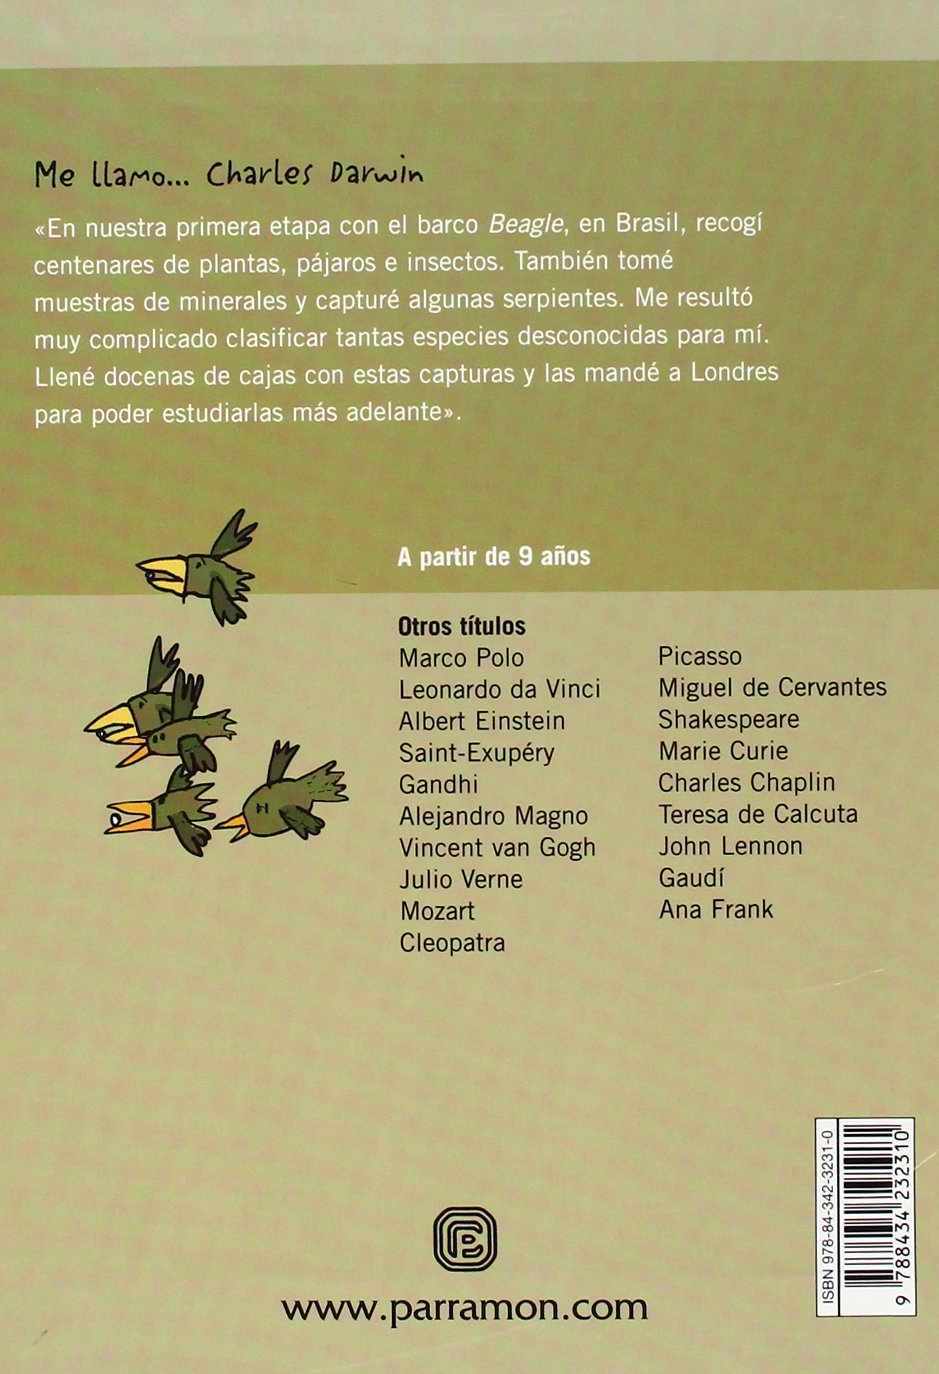 Charles Darwin (Me llamo / My name is) (Spanish Edition): Mateu Lluis Cugota, Teresa Marti: 9788434232310: Amazon.com: Books